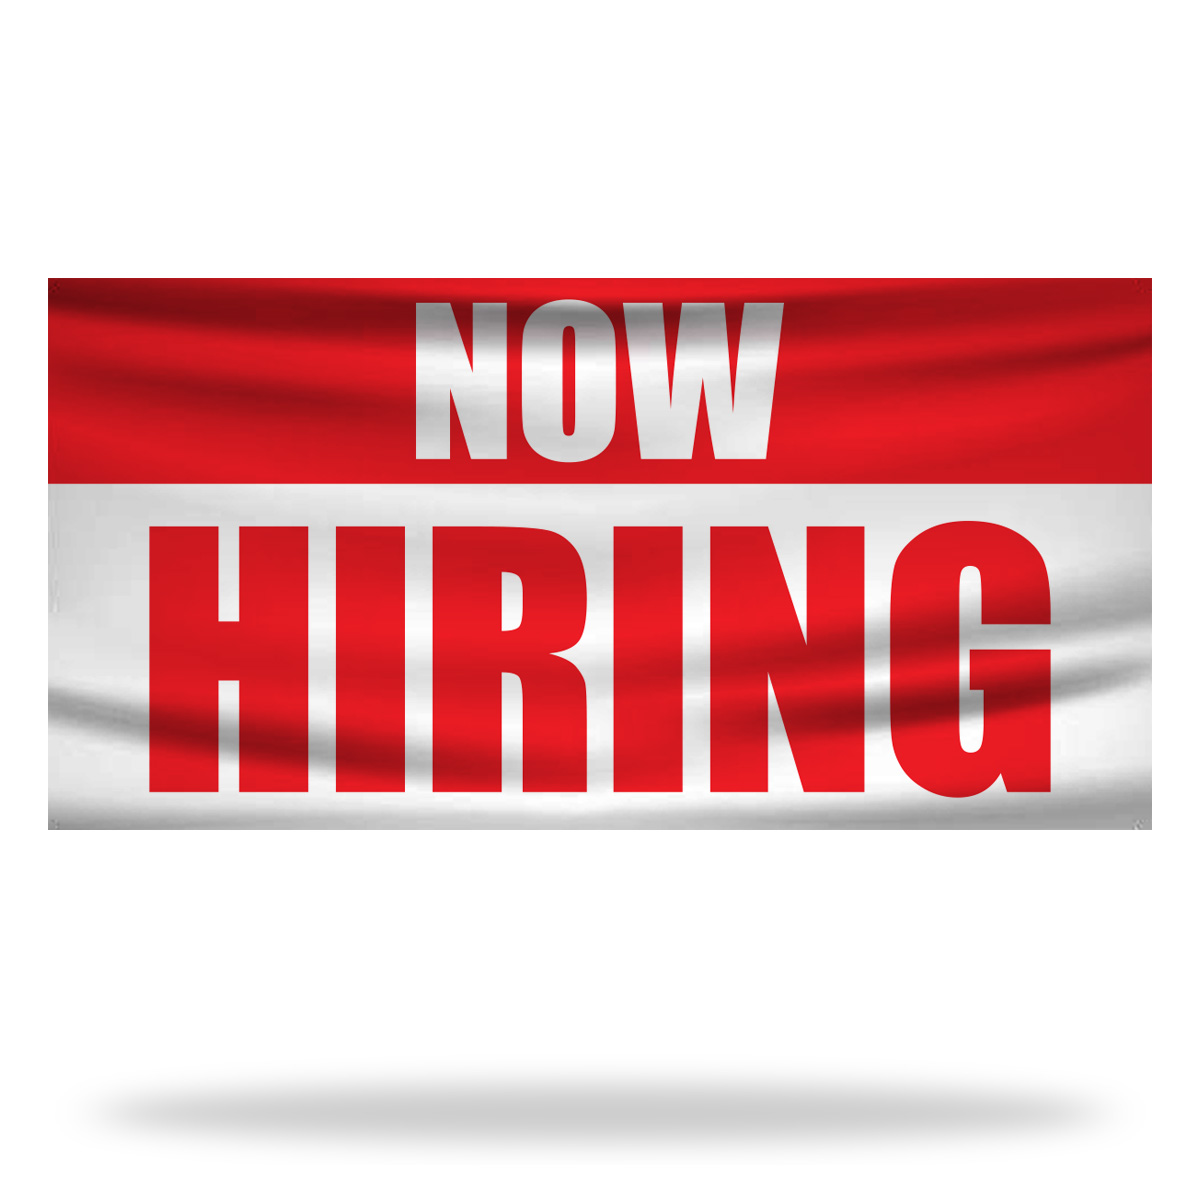 Now Hiring Flags & Banners Design 03